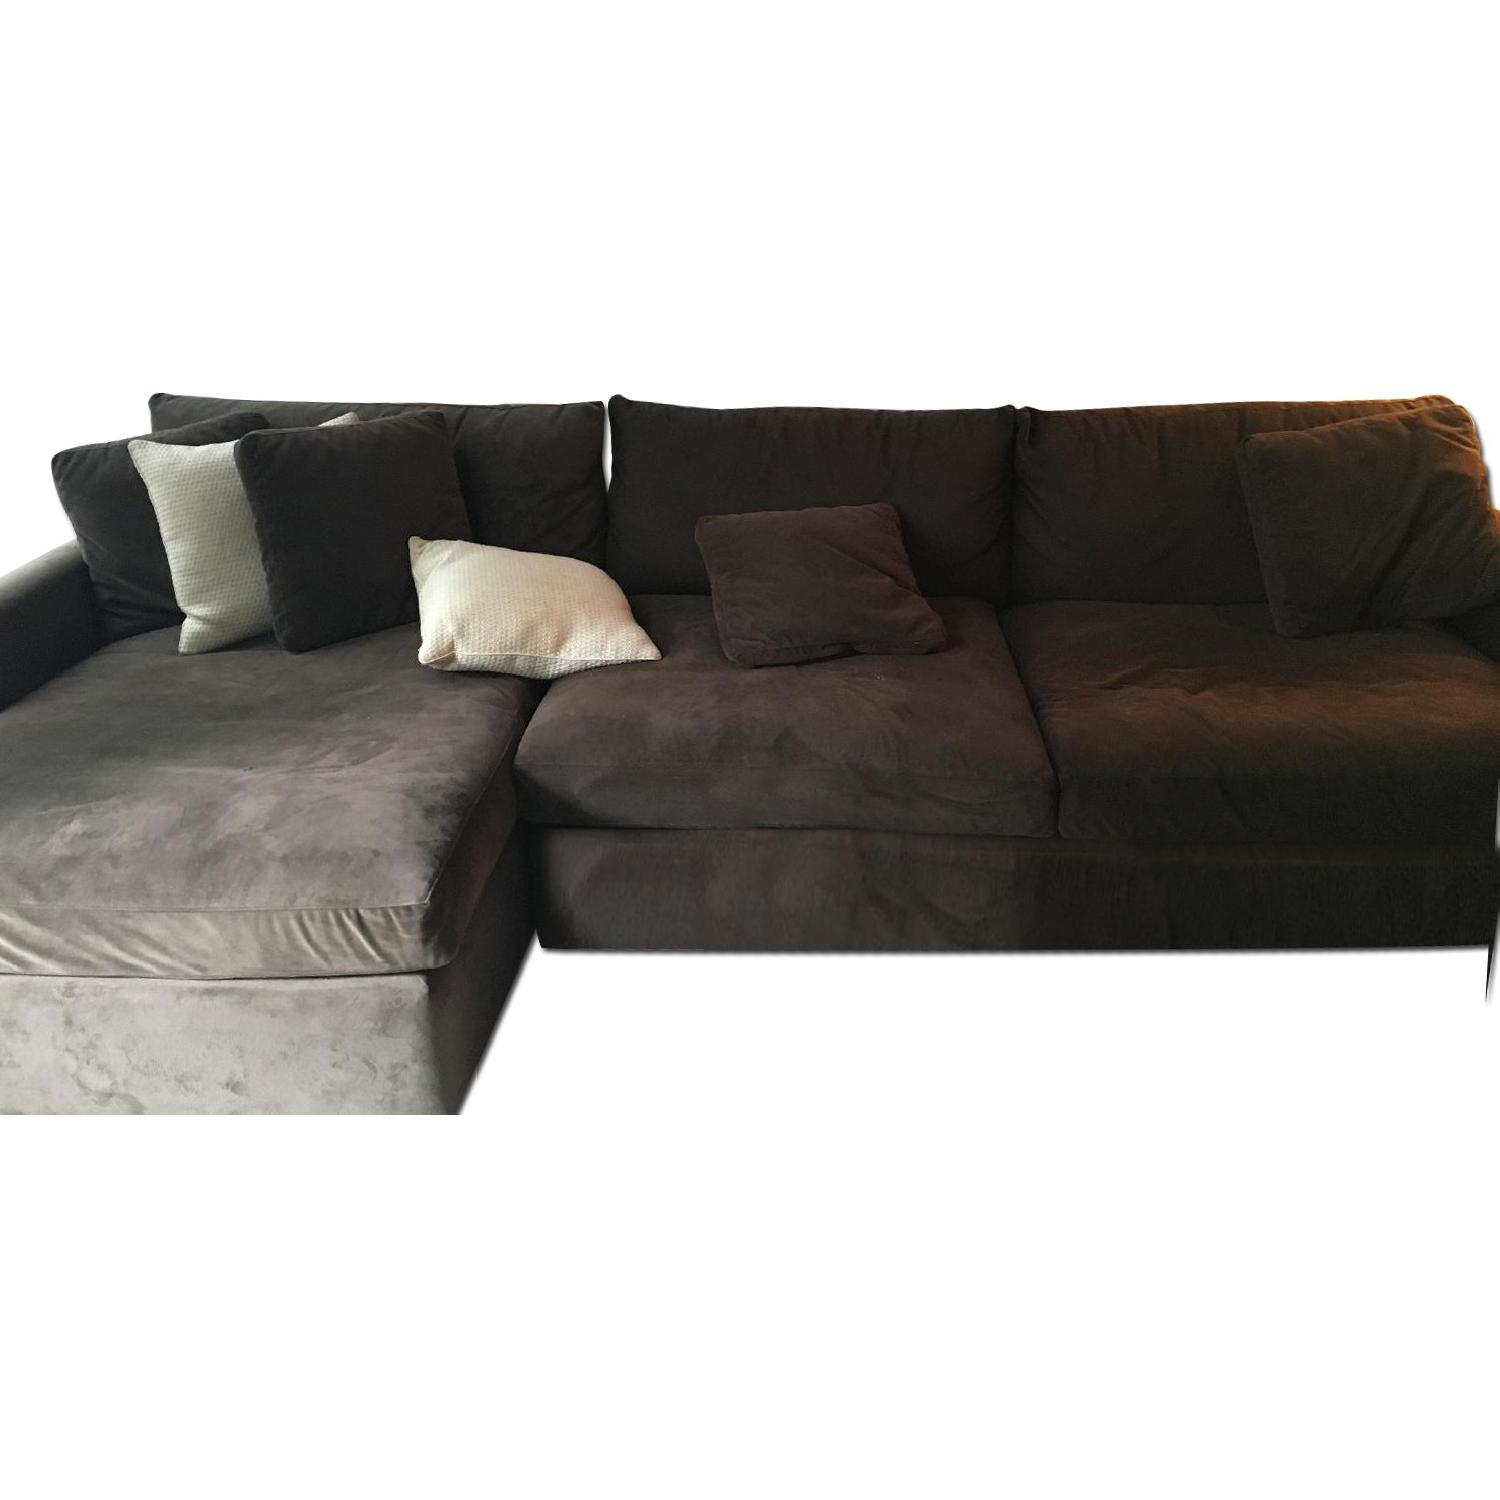 Crate & Barrel Lounge Sectional w/ Chaise - image-0